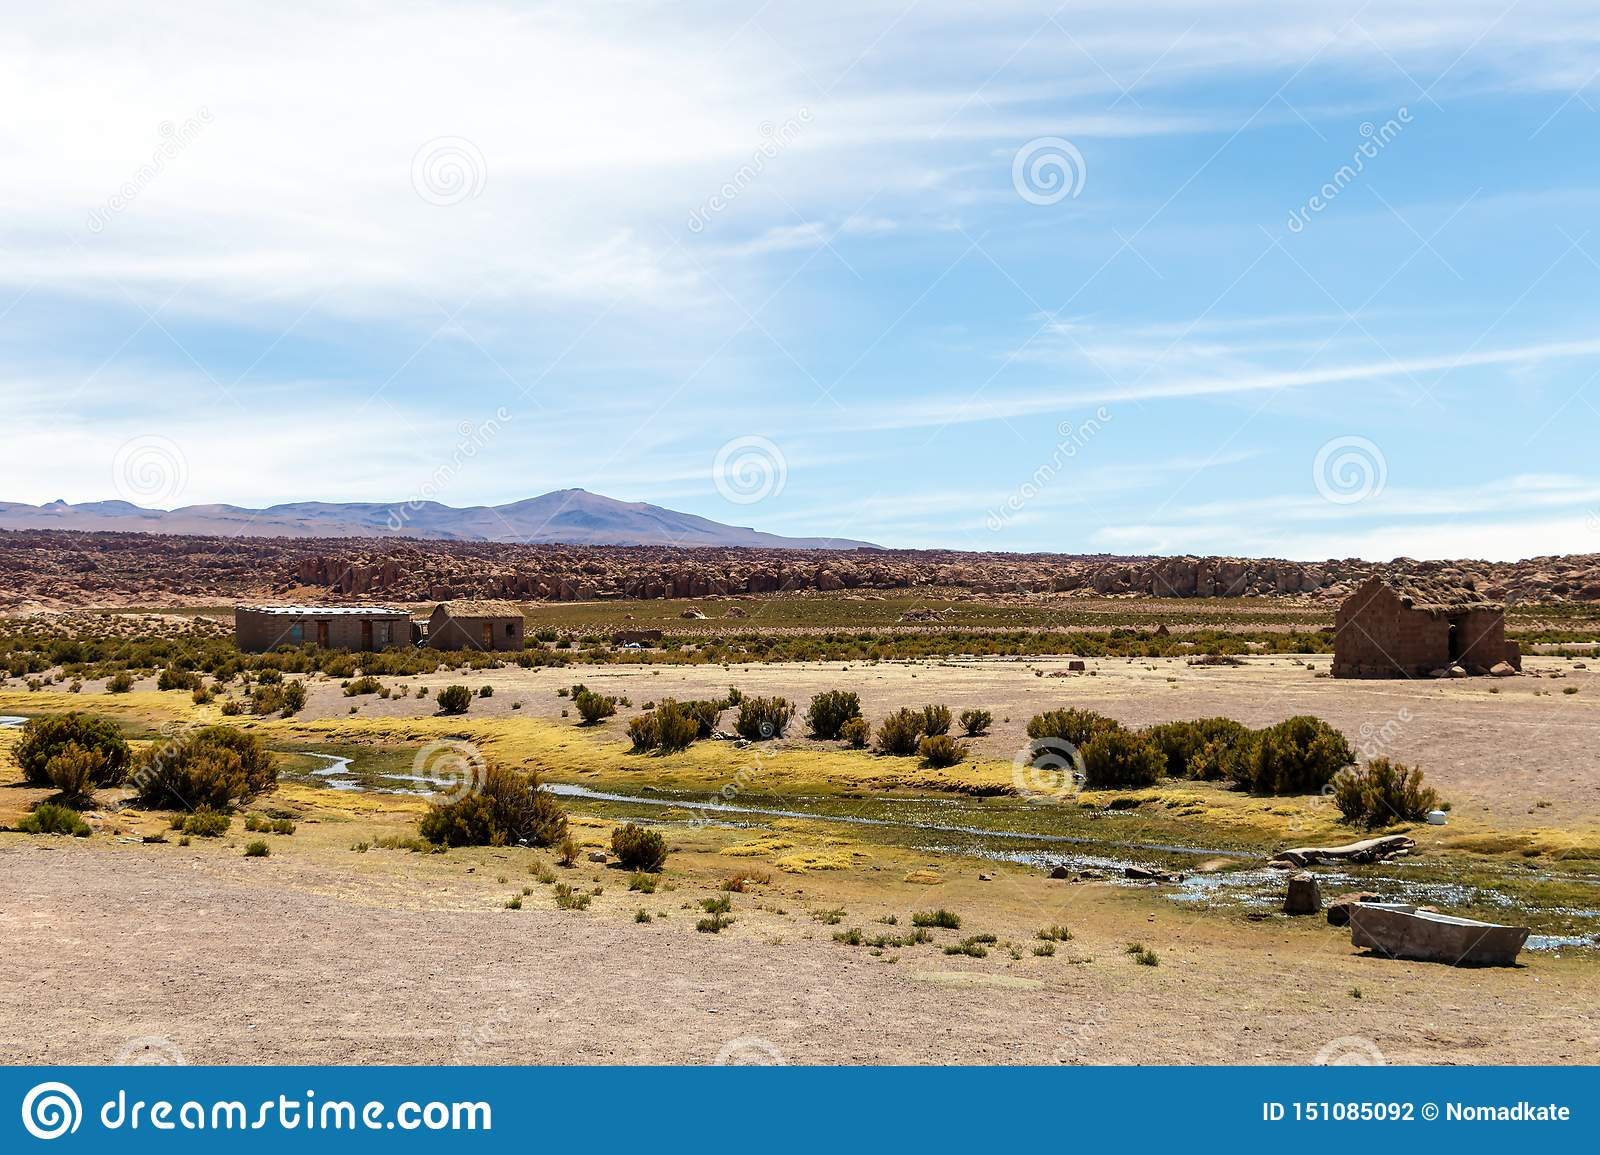 Desert landscapes with mountains in Bolivia at the dry season, dry vegetation is a natural background